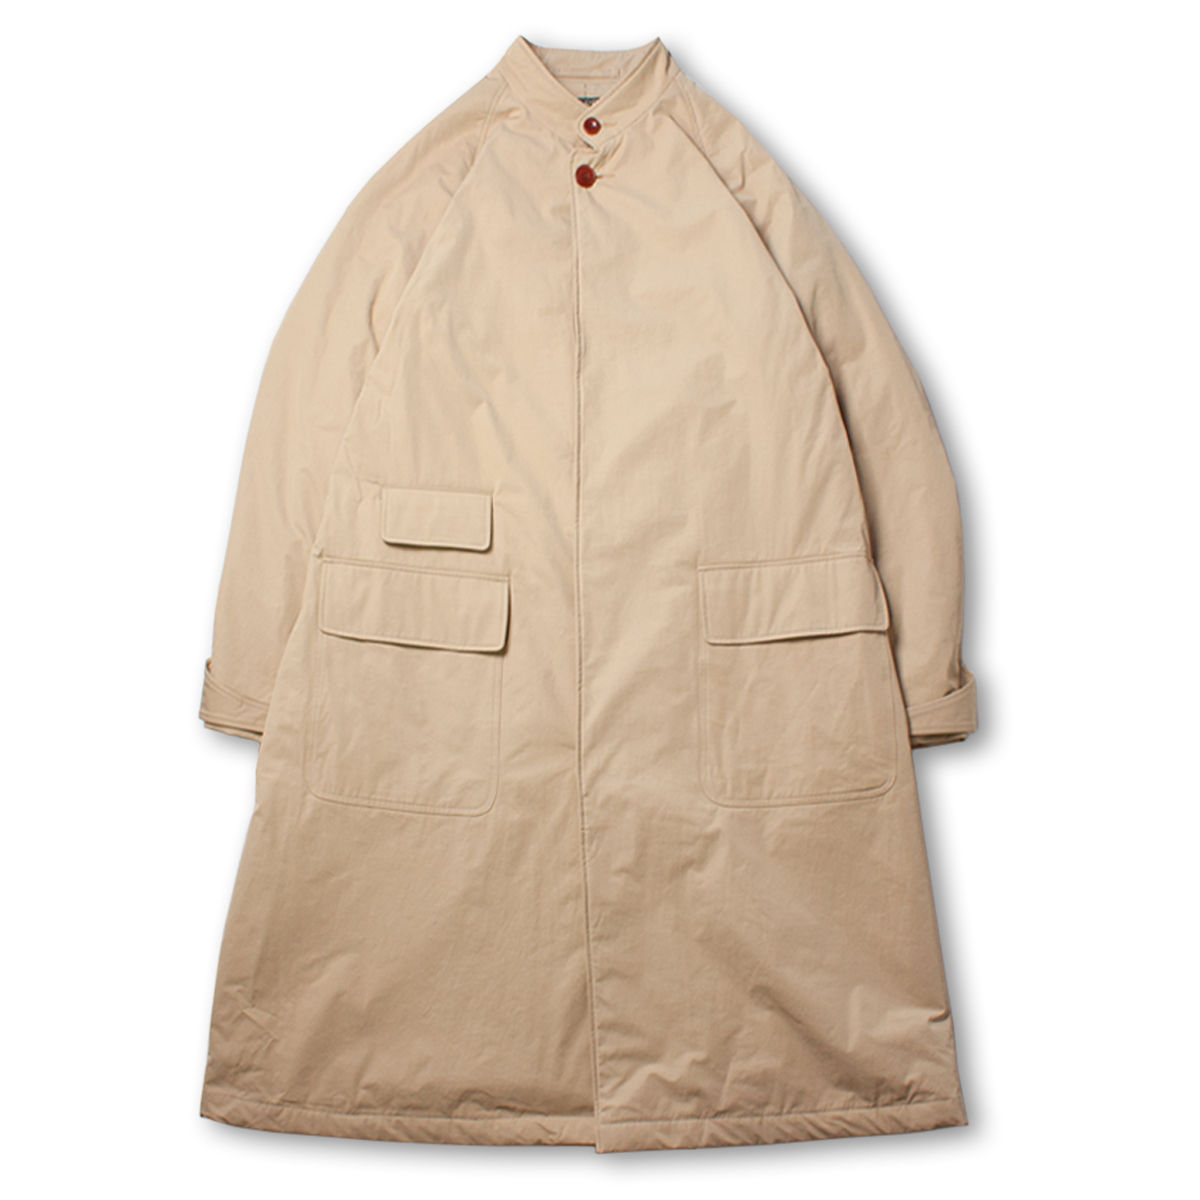 [HAVERSACK] SPLIT CROSS HUNTING COAT 'BEIGE'